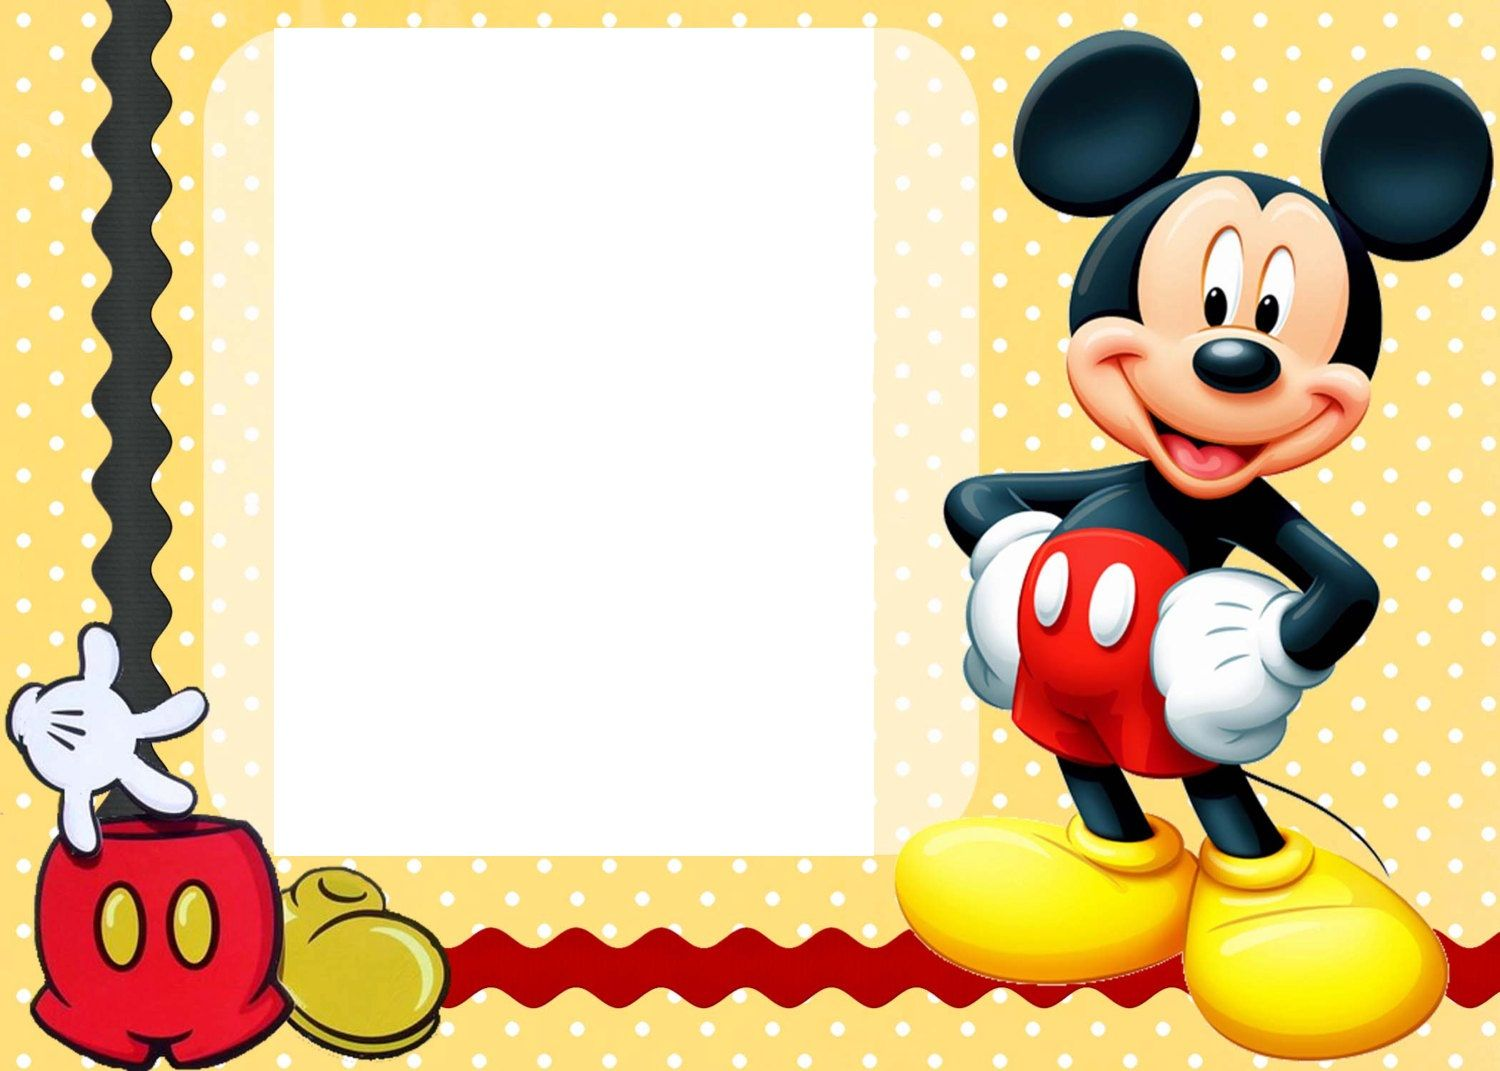 Mickey Mouse cards. Free printable Mickey Mouse birthday cards ...